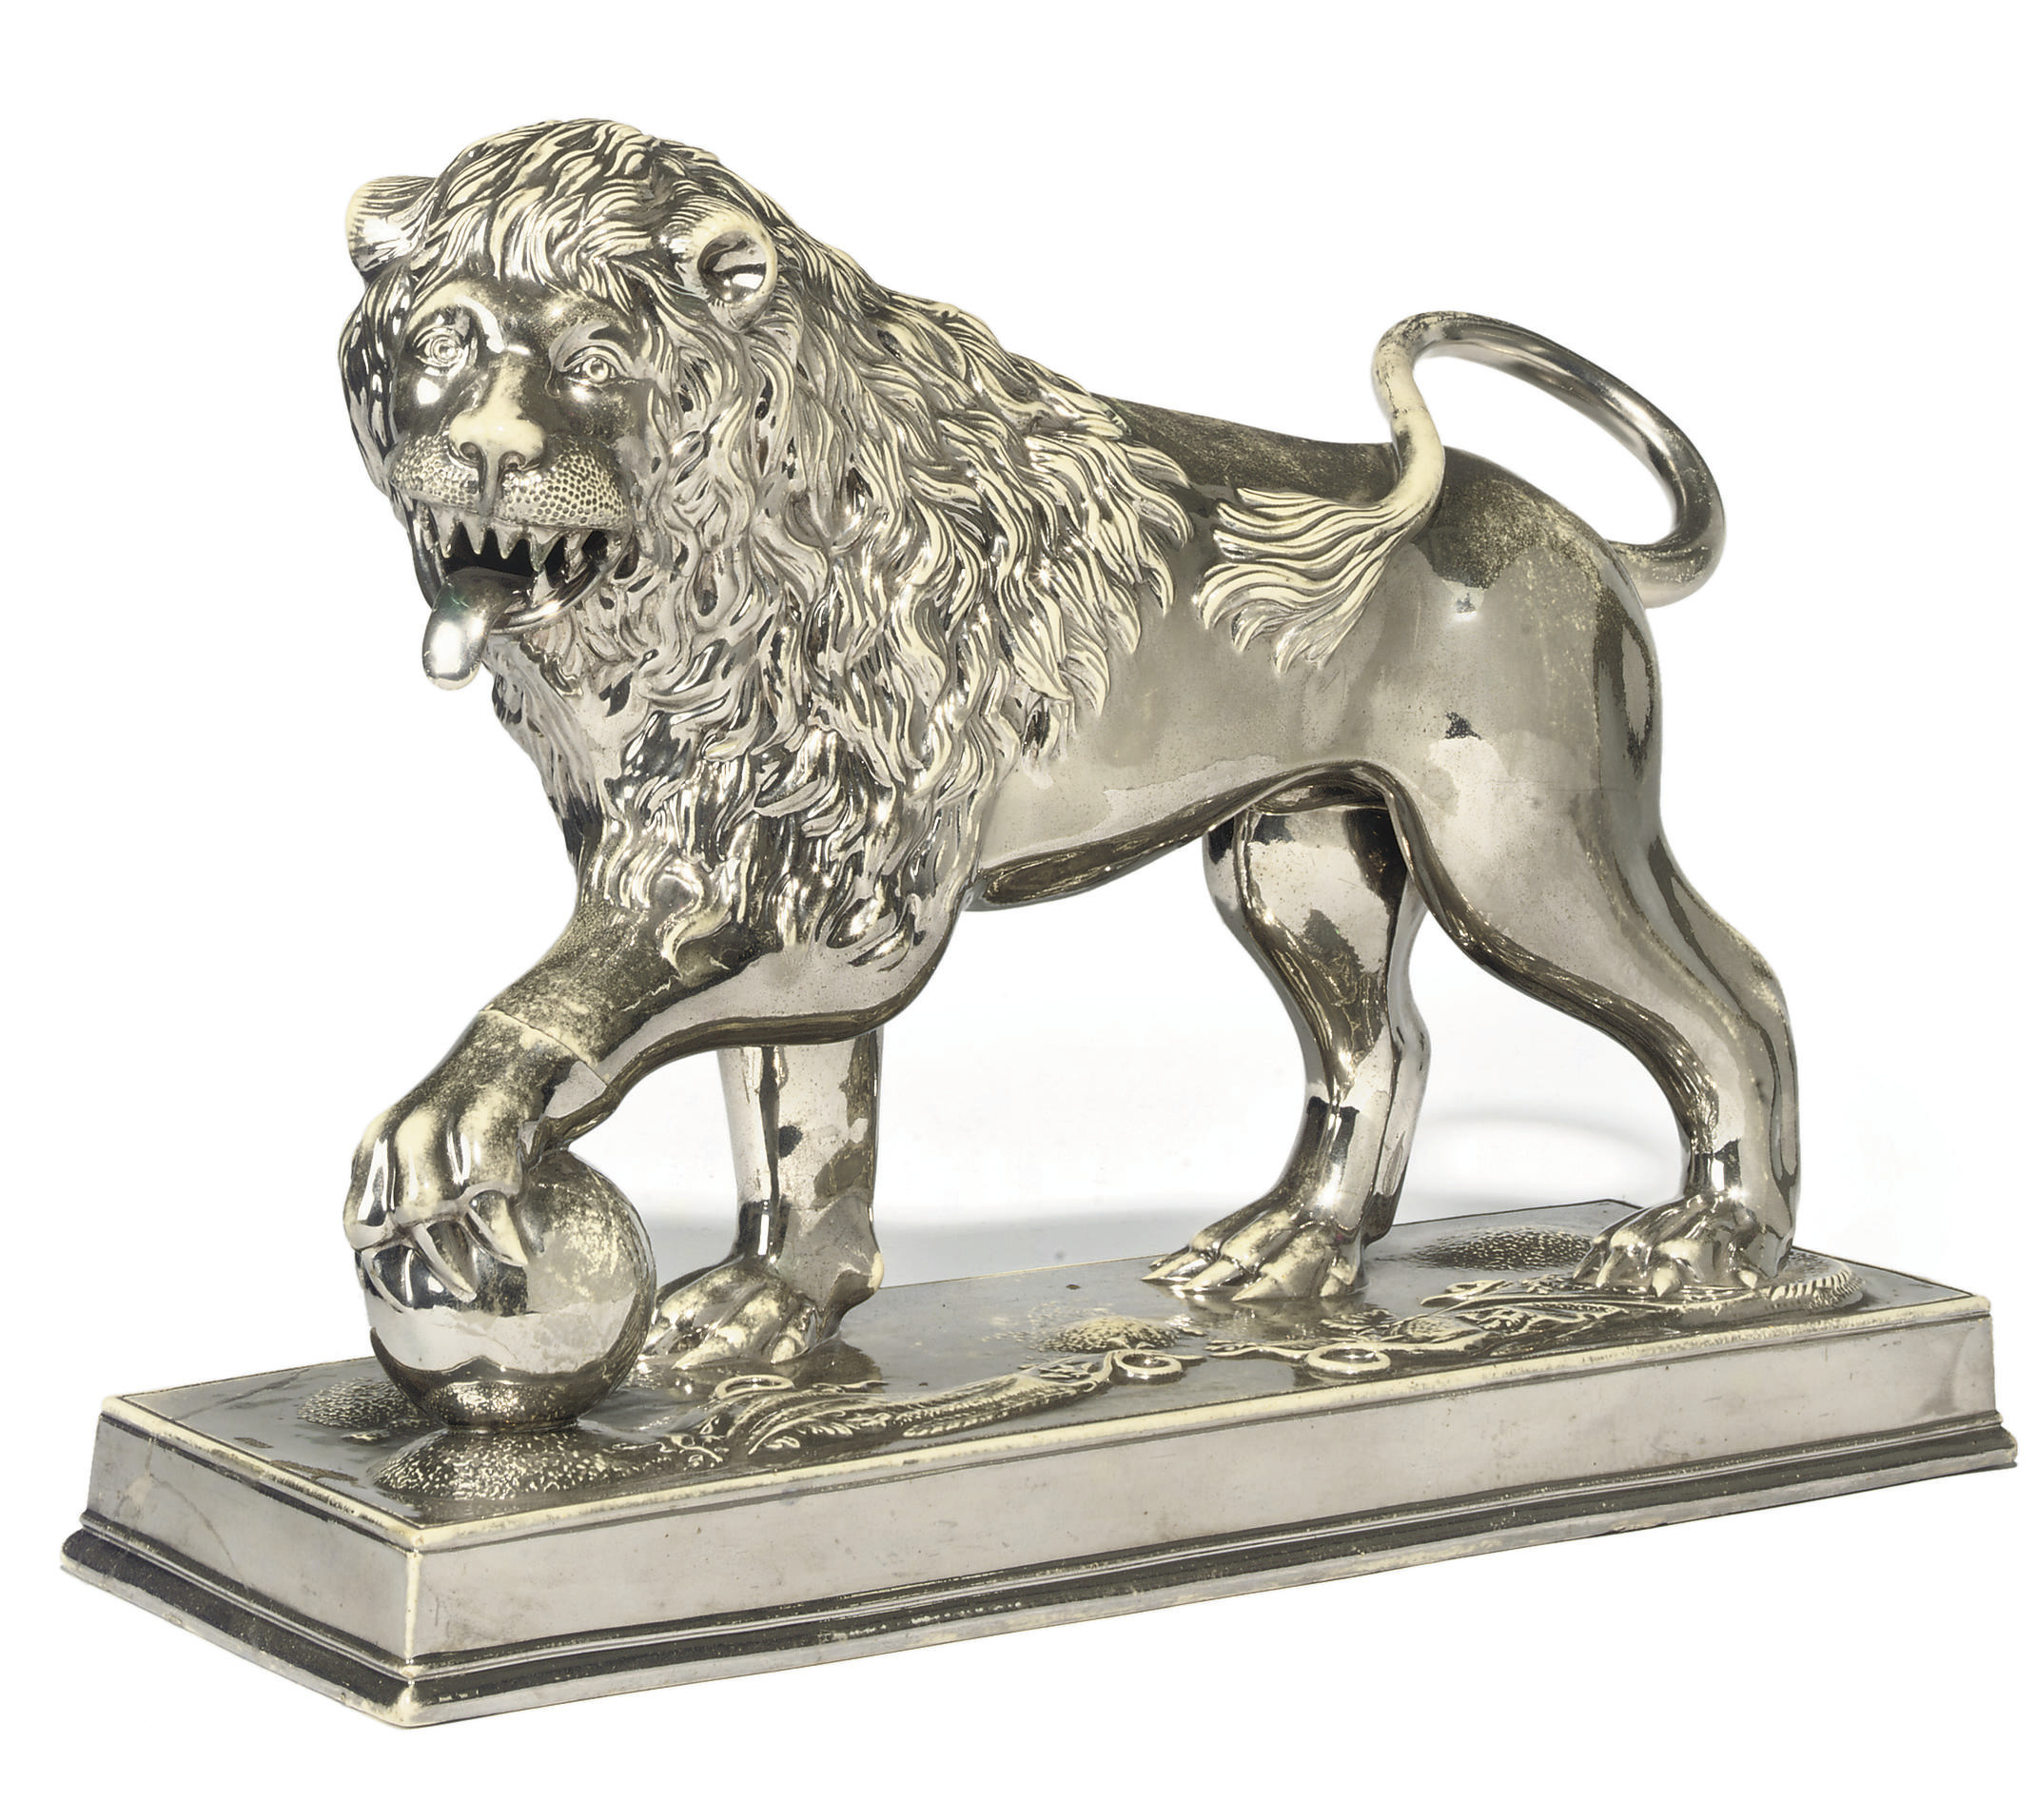 A STAFFORDSHIRE POTTERY SILVER-LUSTRE MODEL OF A MEDICI LION